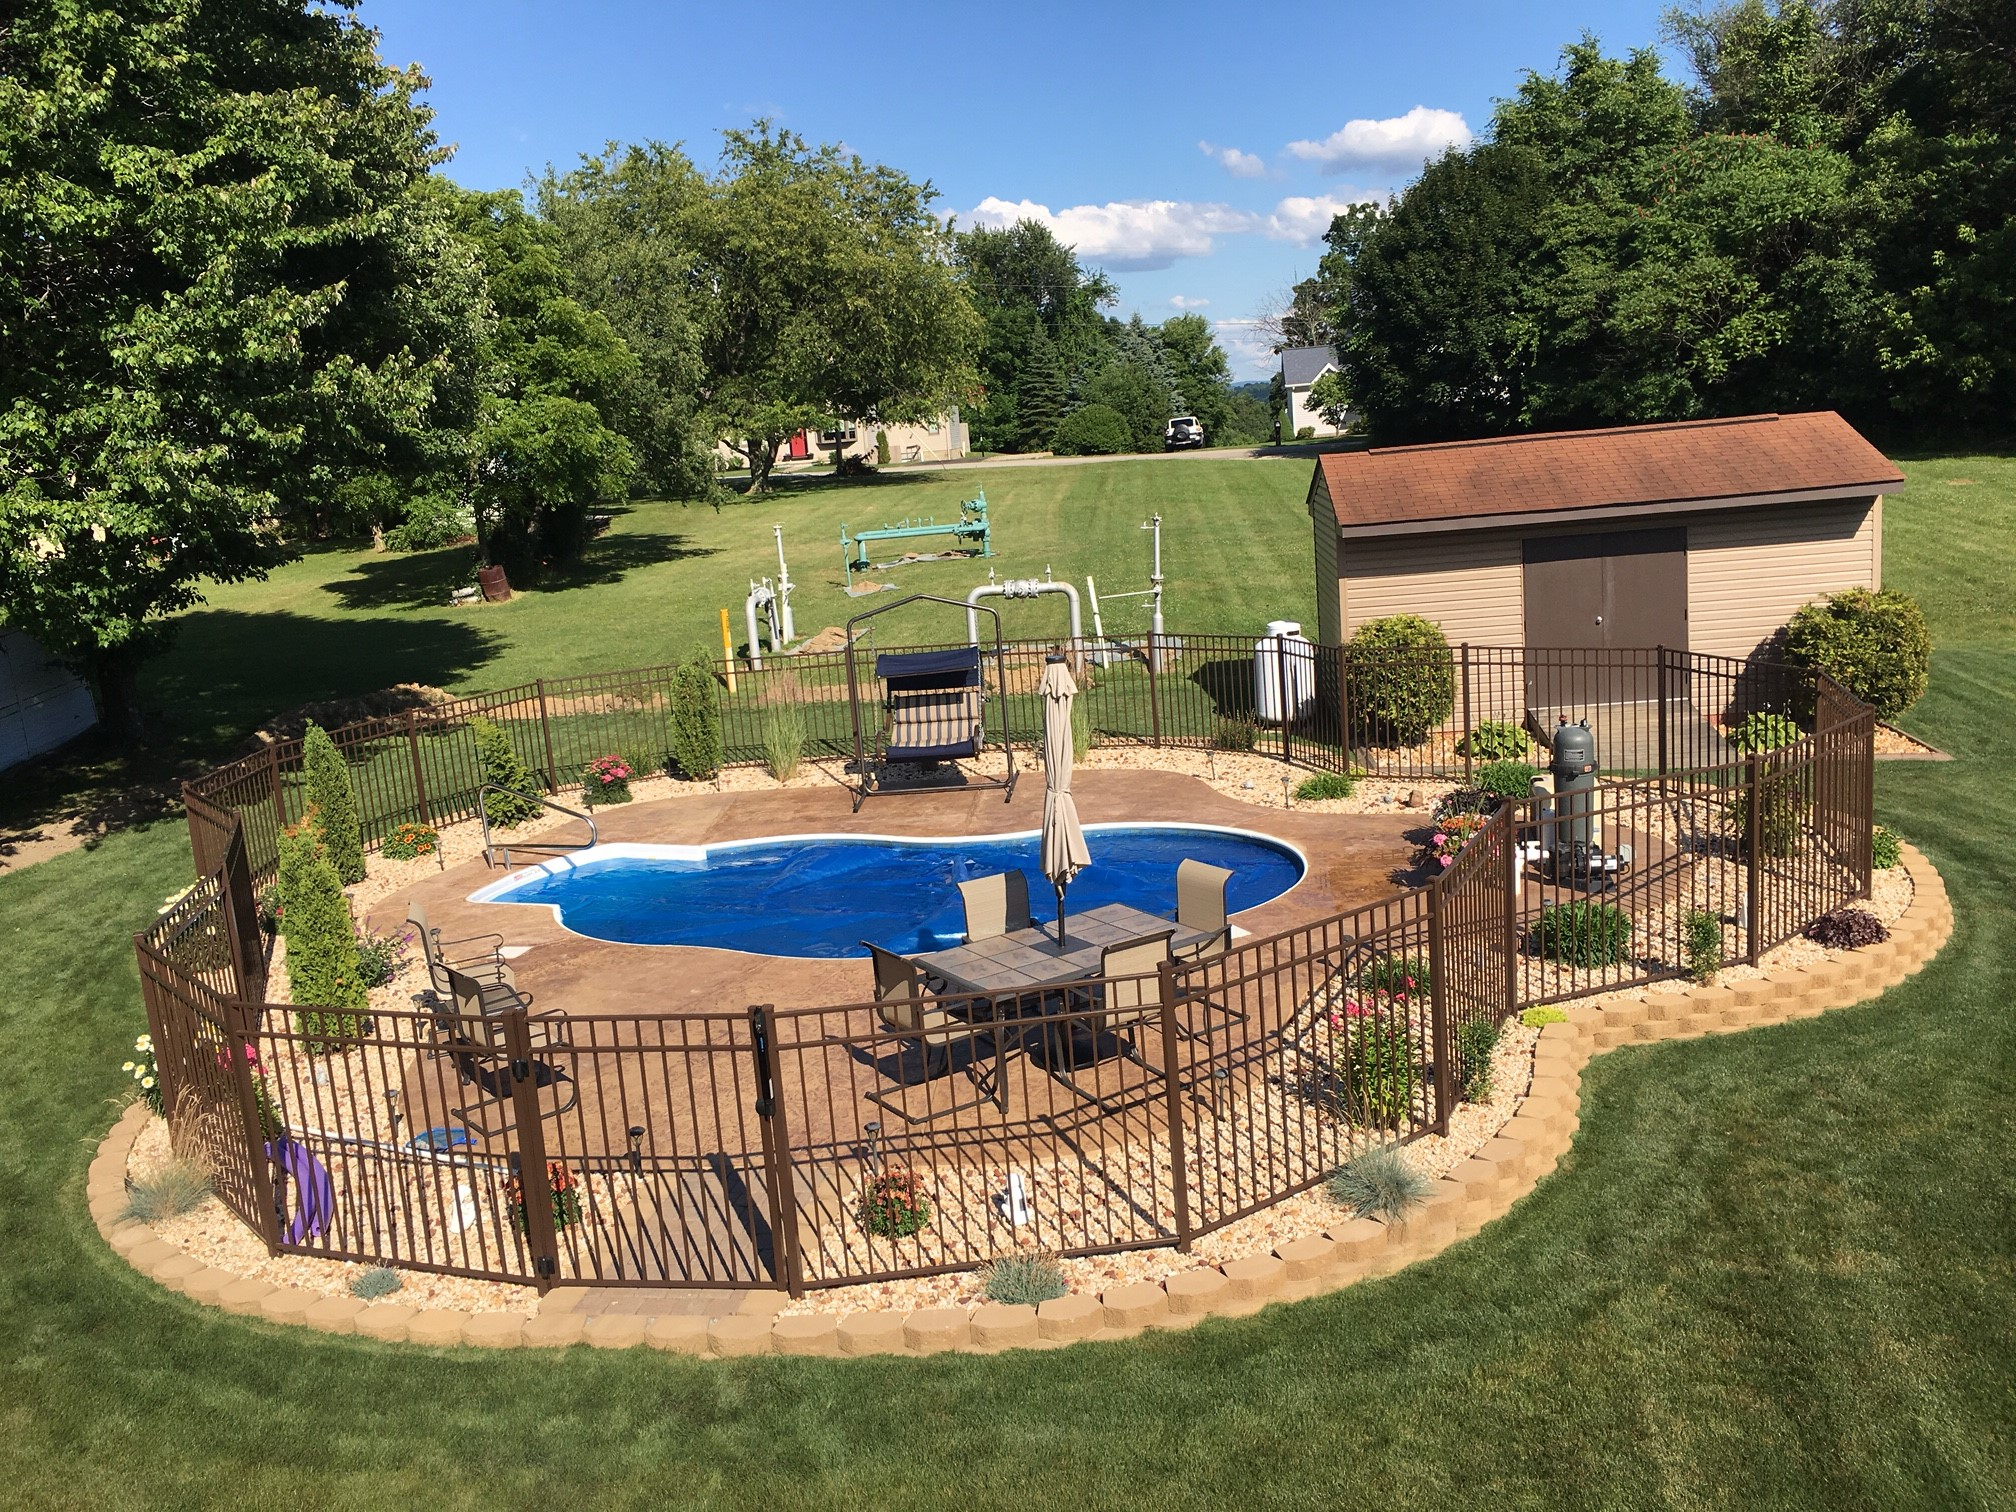 Decks for Above Ground Pools | Semi Inground Pools with Deep End | Semi Inground Pool Ideas